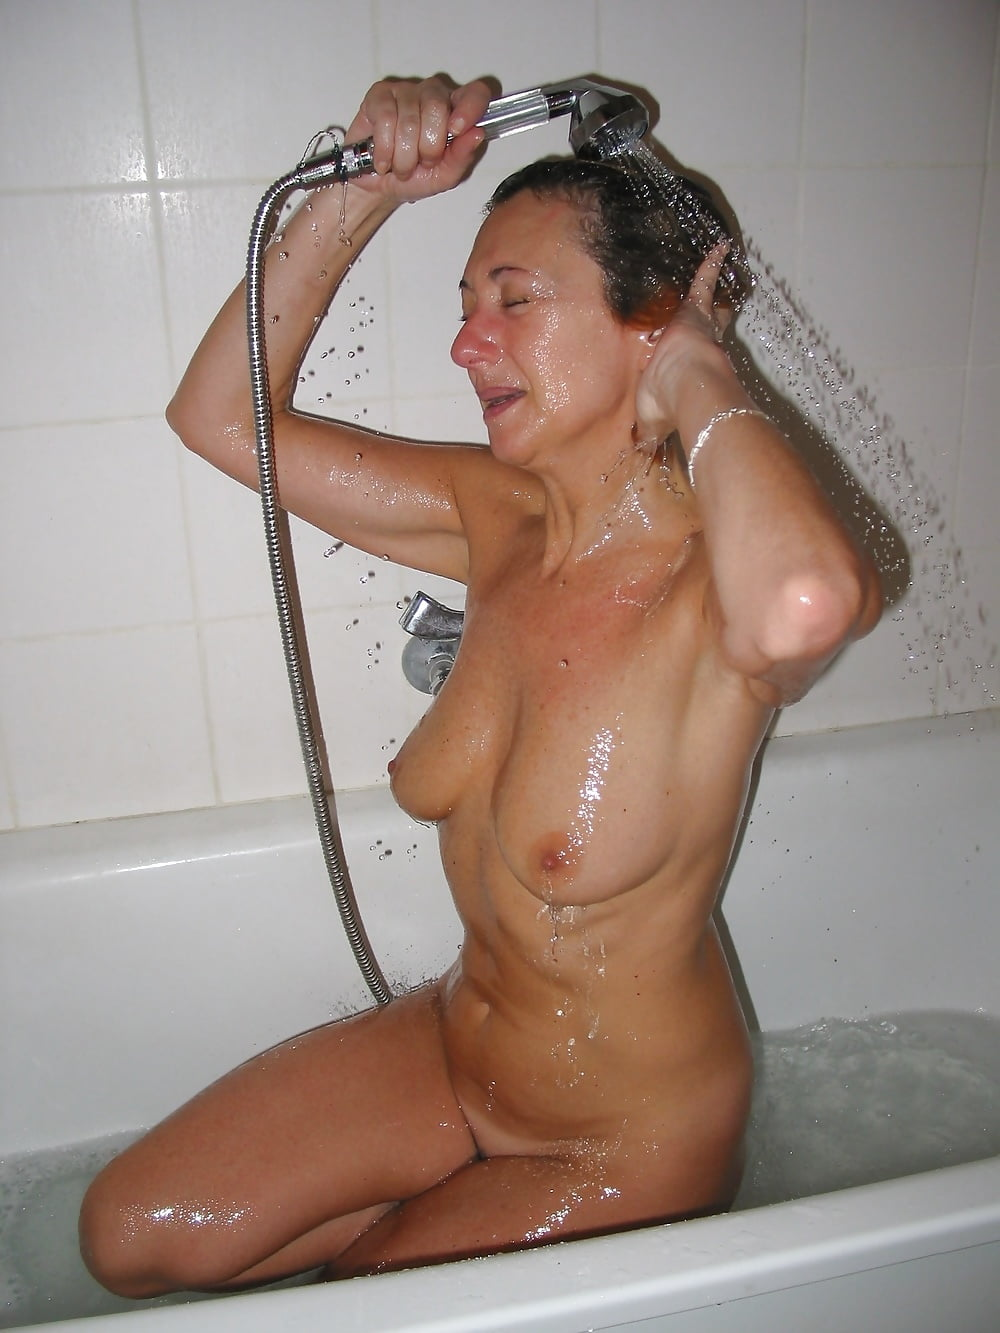 Nude housewives in showers, watch a girl fuck